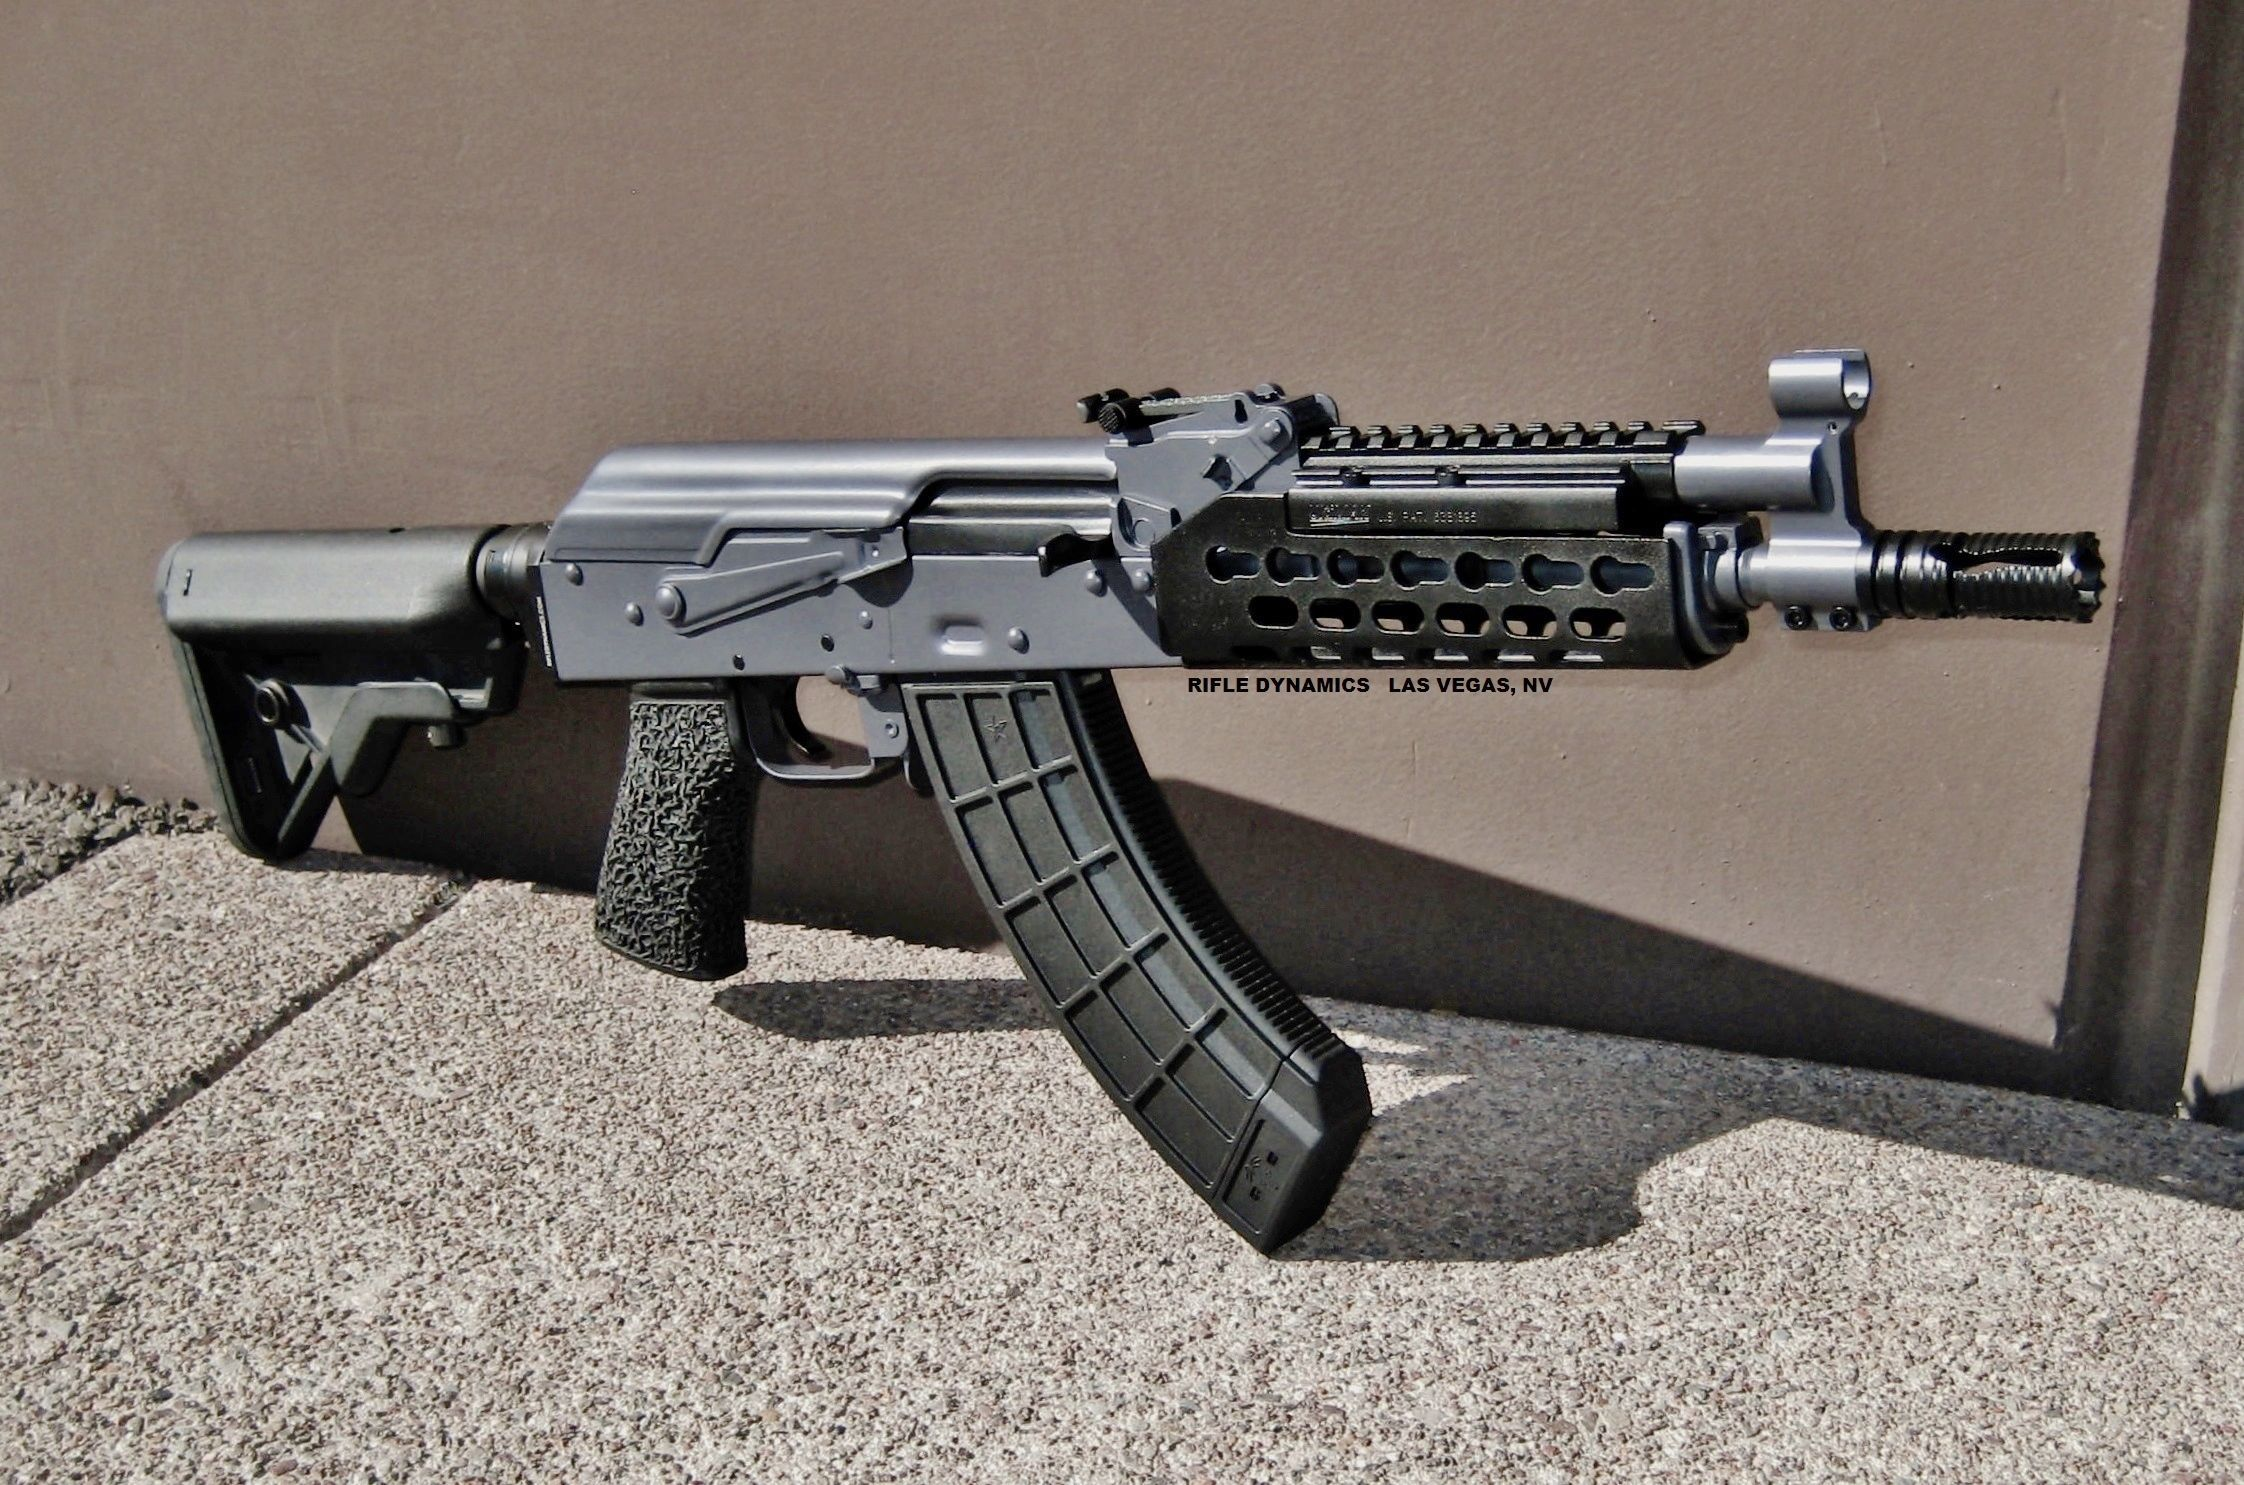 """Rifle Dynamics / Here is the RD710 (7.62x39) SBR, complete with paint job in grey moly. The 10"""" barrel greatly improves velocity. Full length handguards (modified Krebs Keymod shown here), Ultimak rail, Fuller rear sight, M-4 stock adapter with B-5 System Bravo stock, and US Palm grip. Awesome!"""